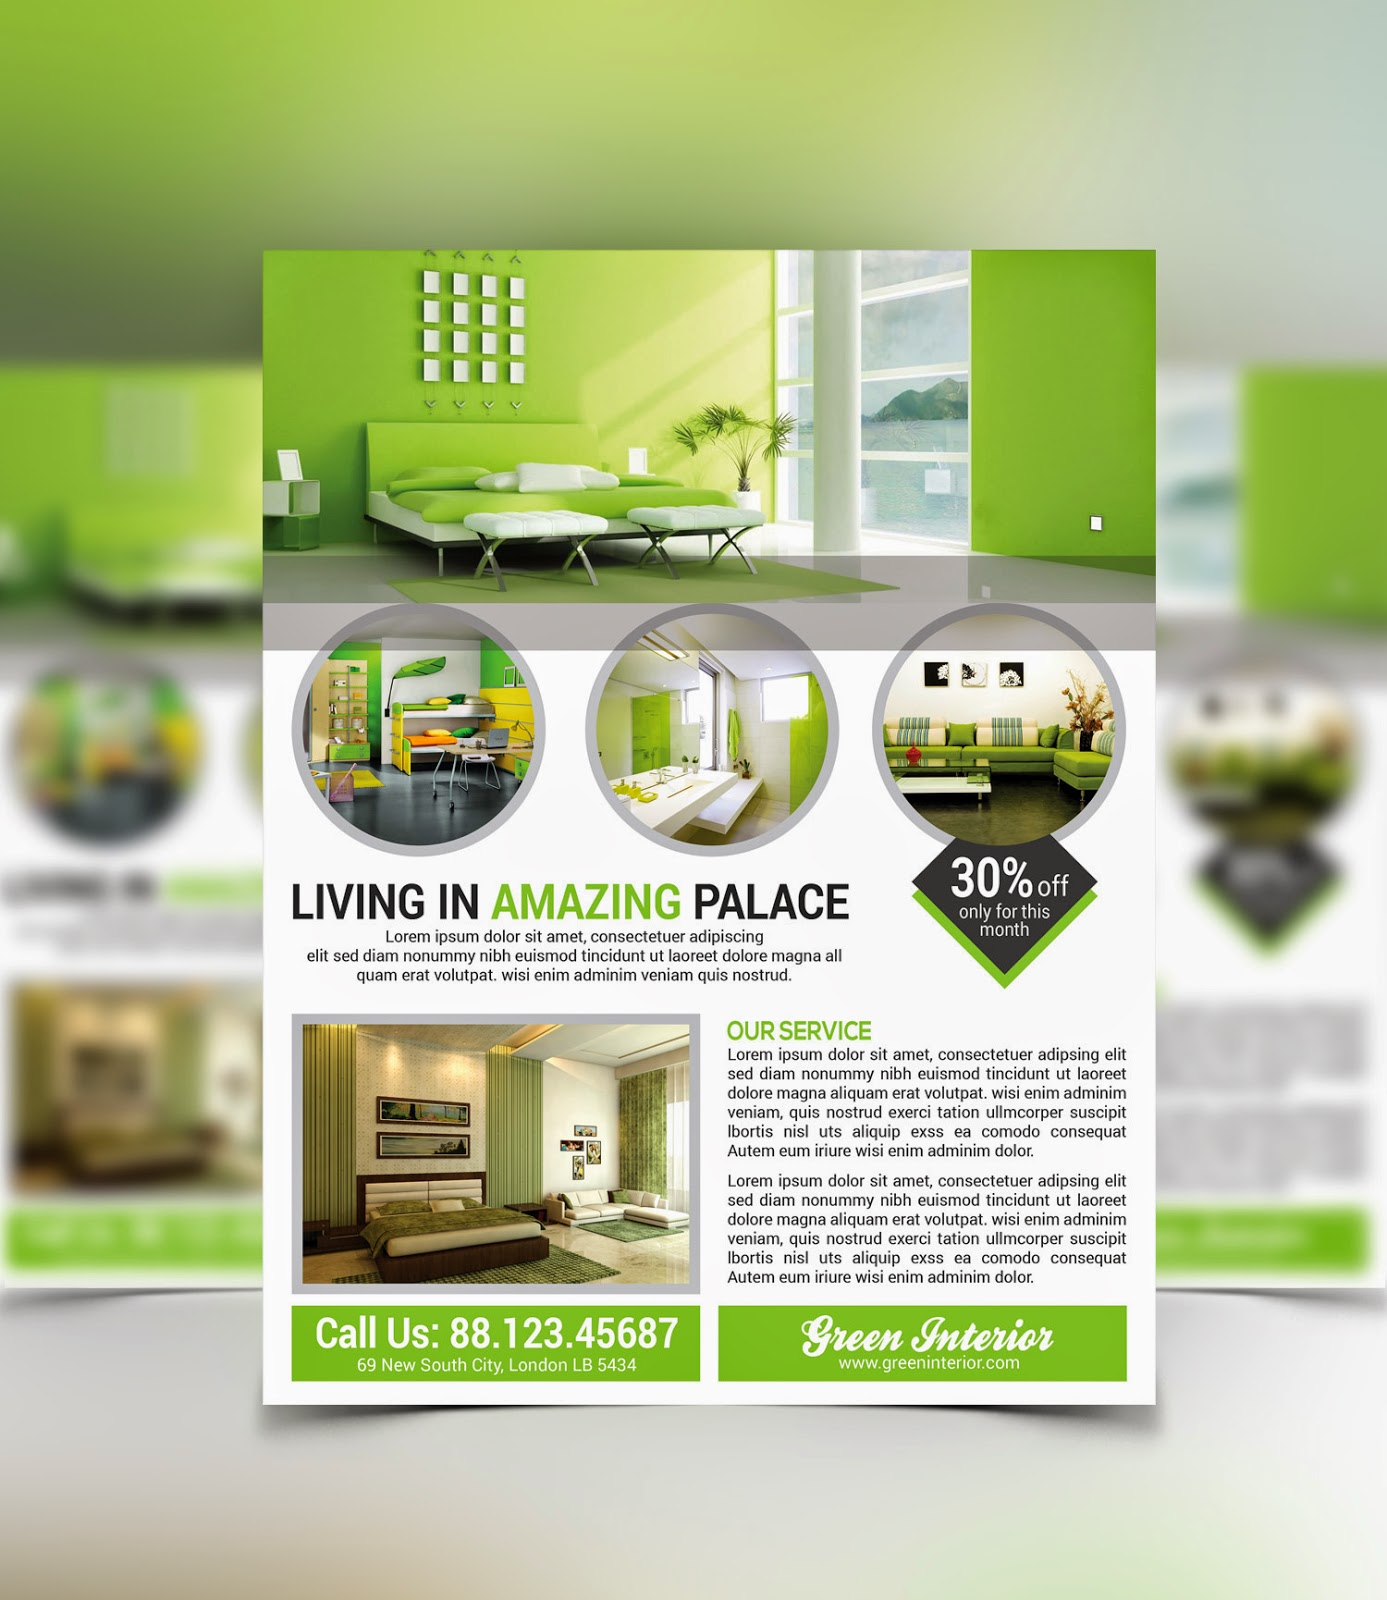 9 Large Images Of Flyers For Interior Design Companies PSD Images